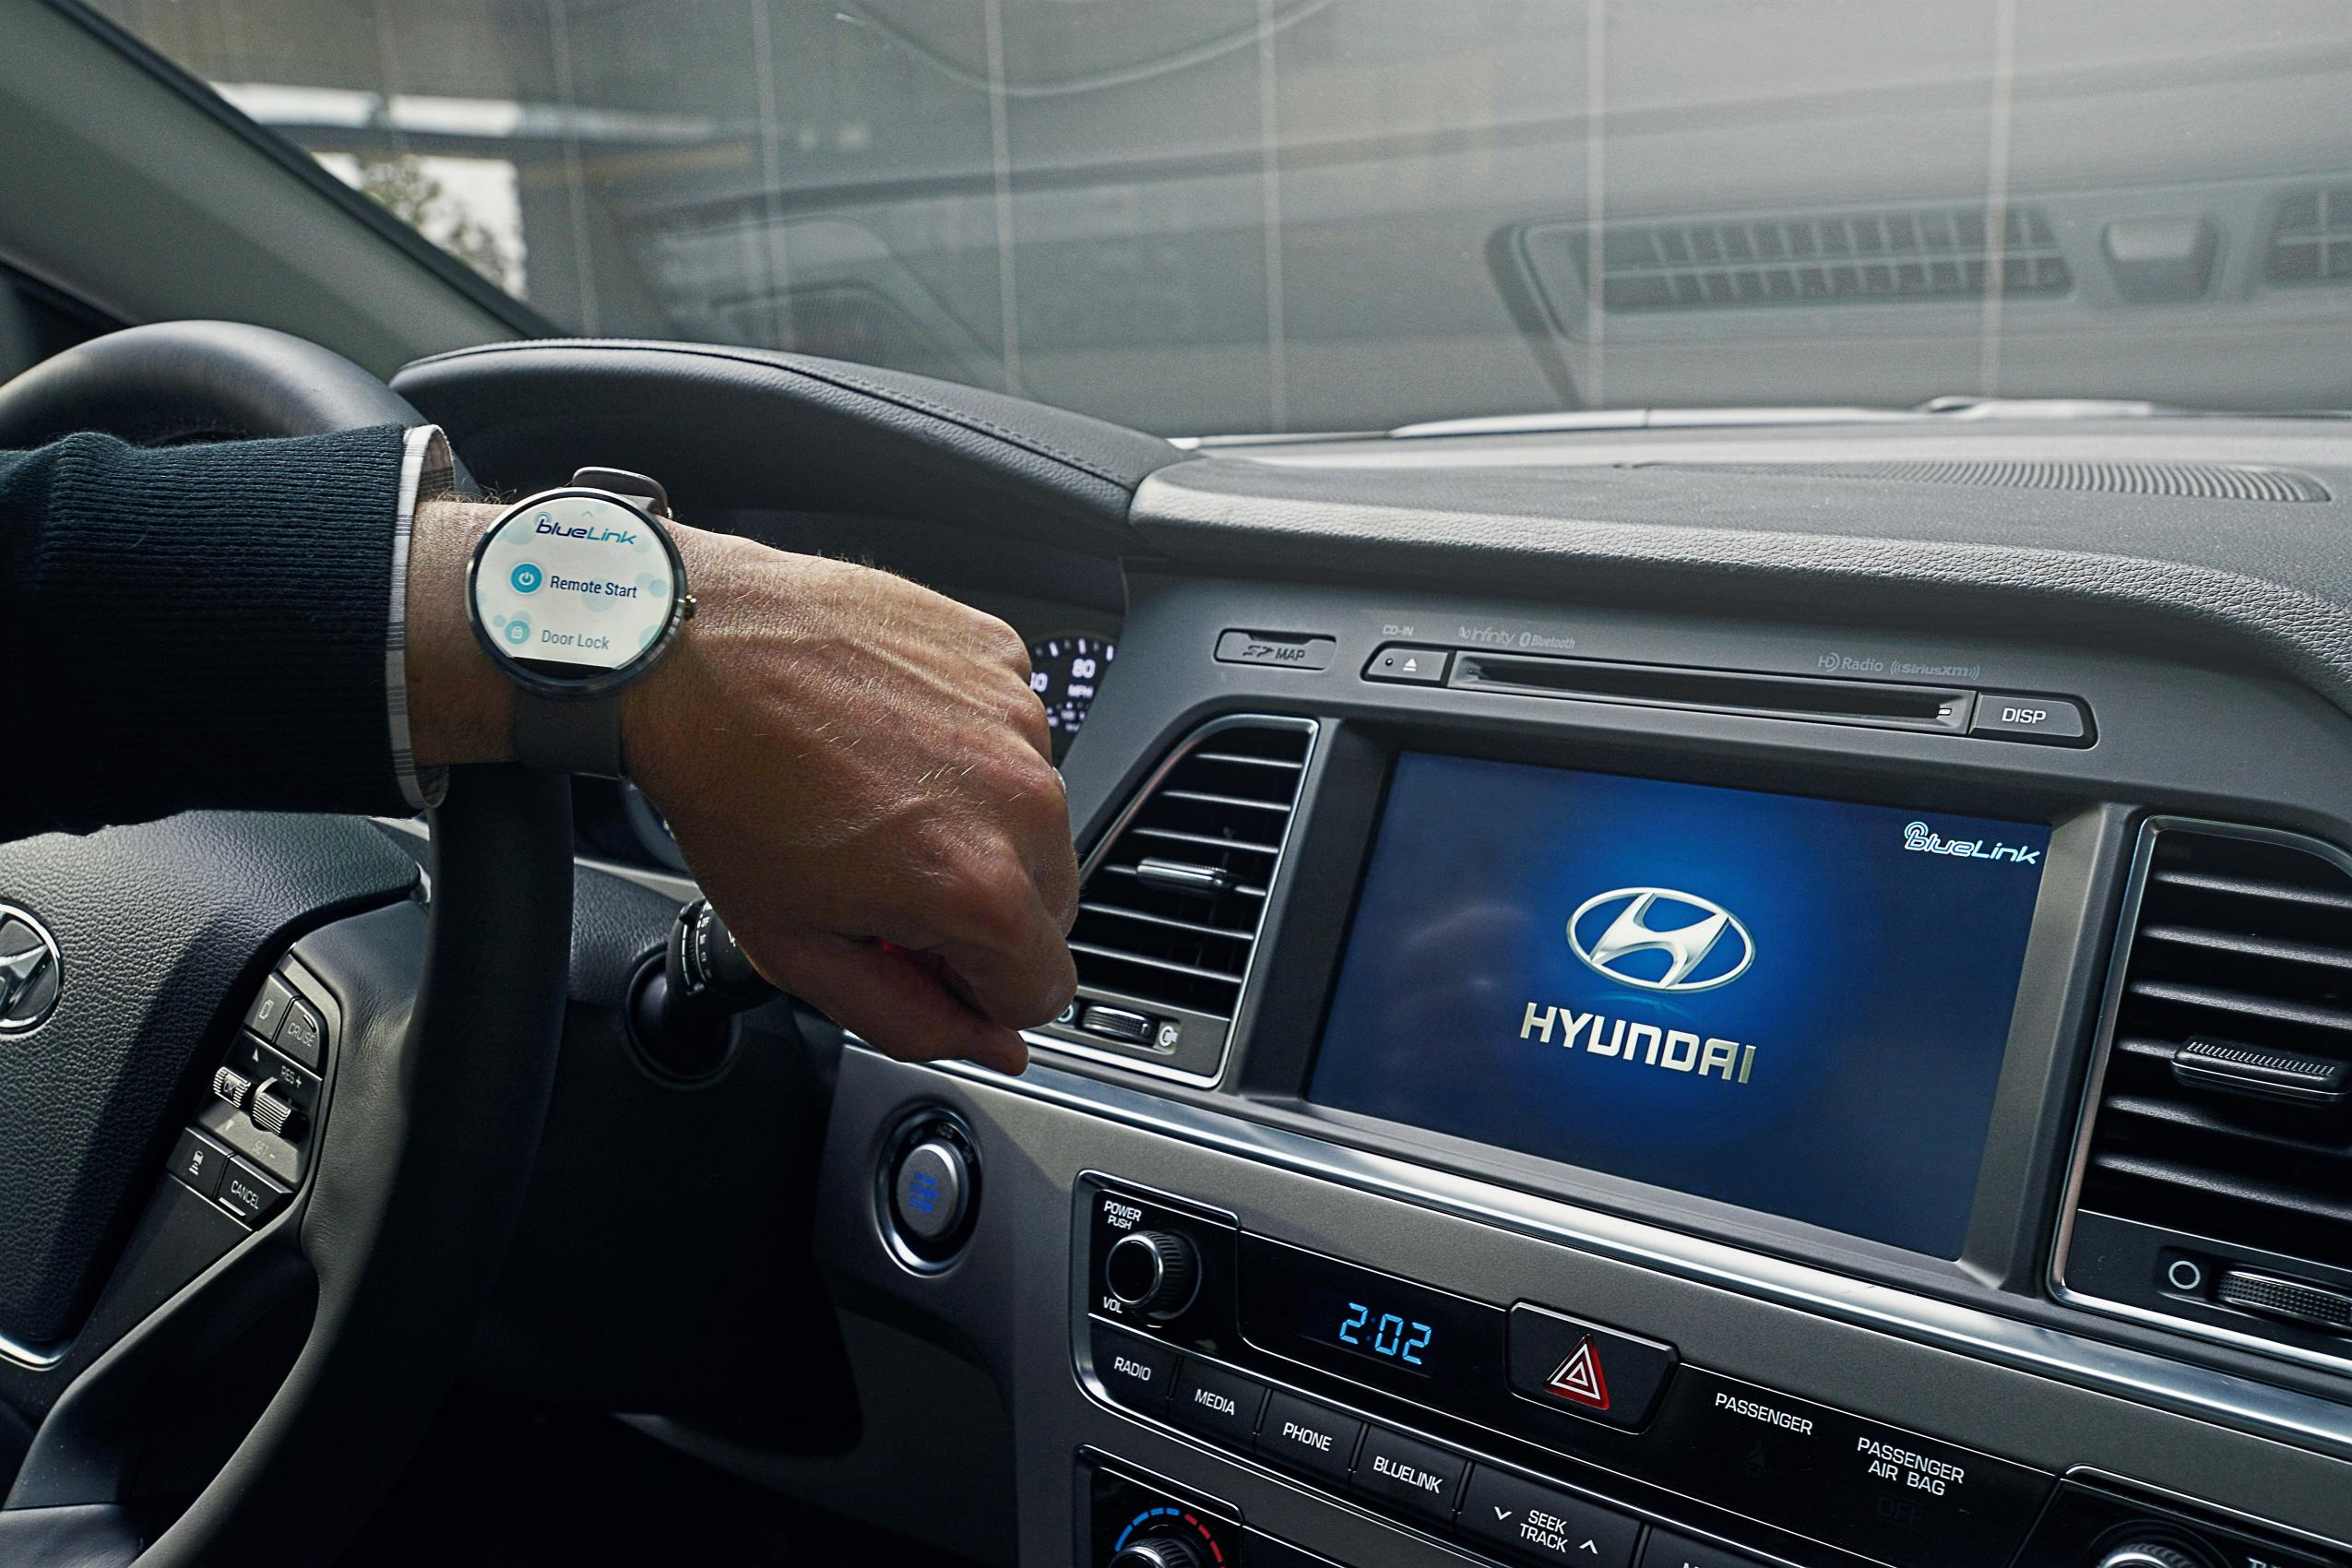 hyundai blue link debuting voice recognition smartwatch app at 2015 ces autoevolution. Black Bedroom Furniture Sets. Home Design Ideas